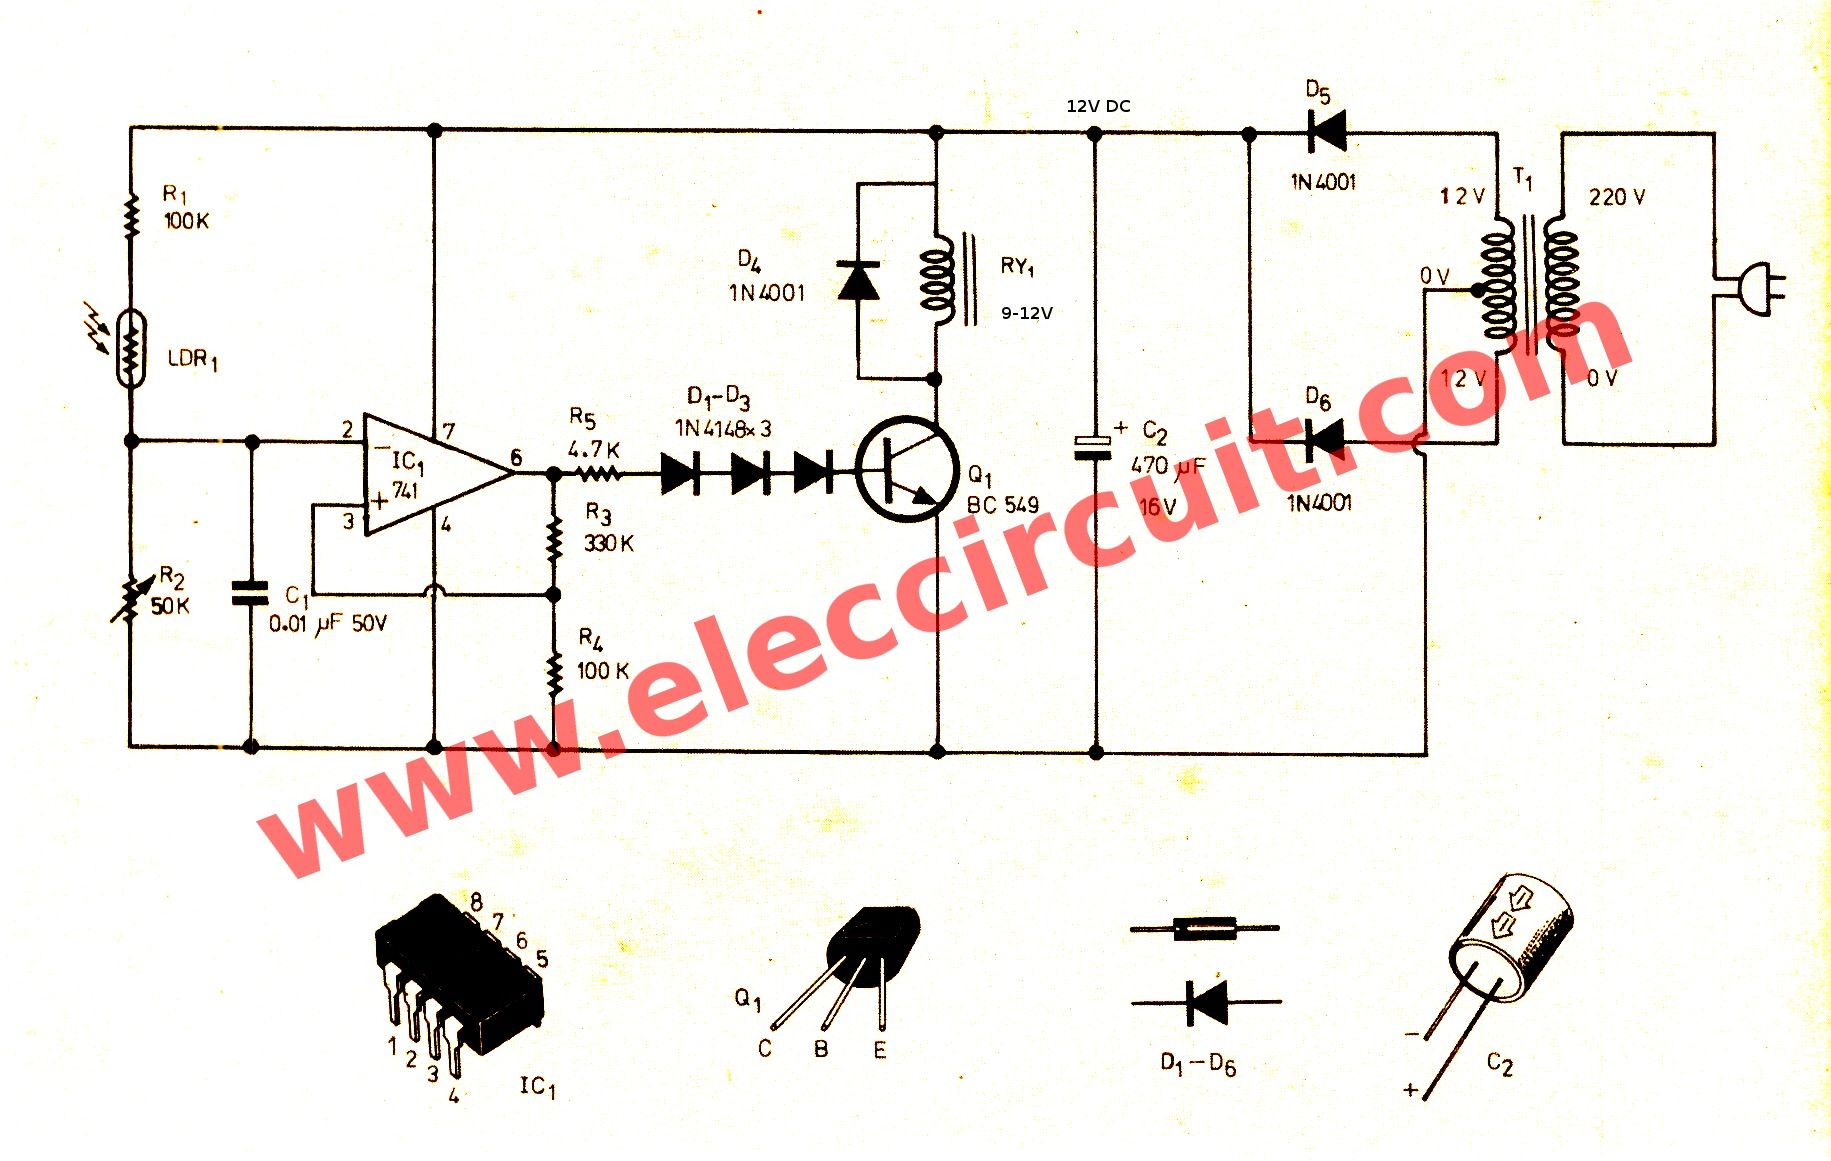 Auto light switch wiring diagram wiring diagrams schematics comfortable auto light switch wiring diagram photos electrical auto light switch wiring diagram automotive light switch asfbconference2016 Images